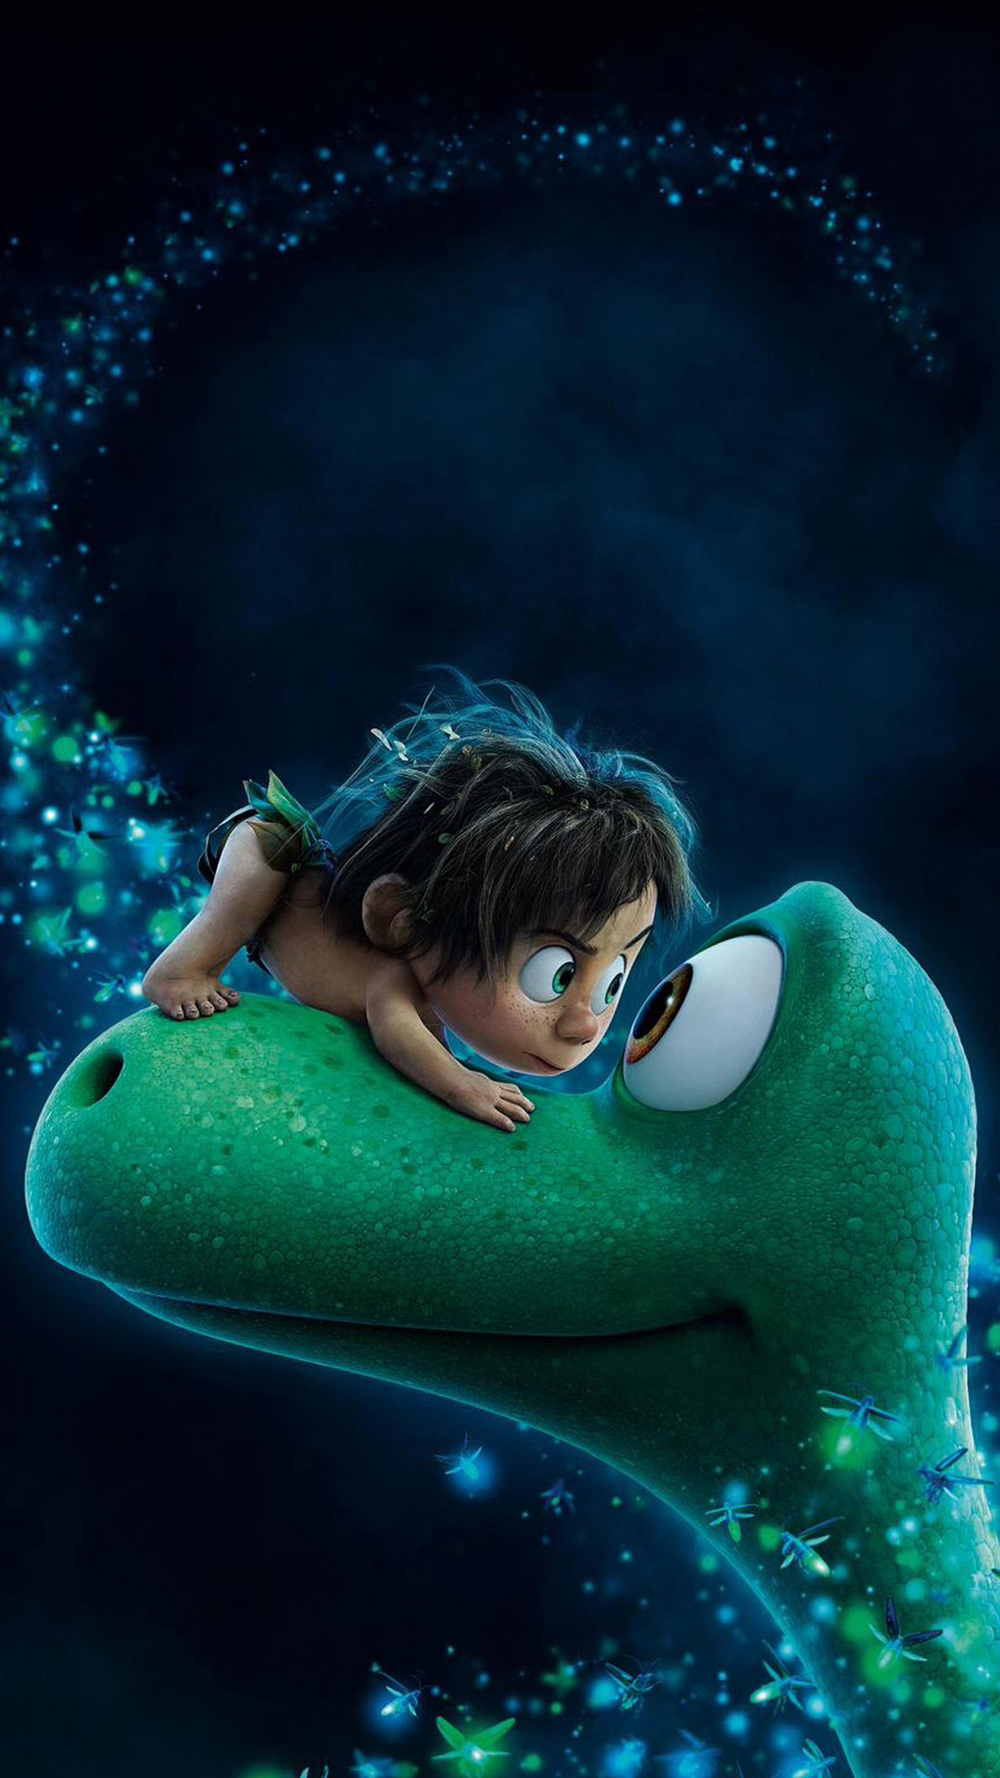 Love Wallpaper Hd For Samsung Galaxy Y : The Good Dinosaur: Downloadable Wallpaper for iOS & Android Phones For The Love of Pixar